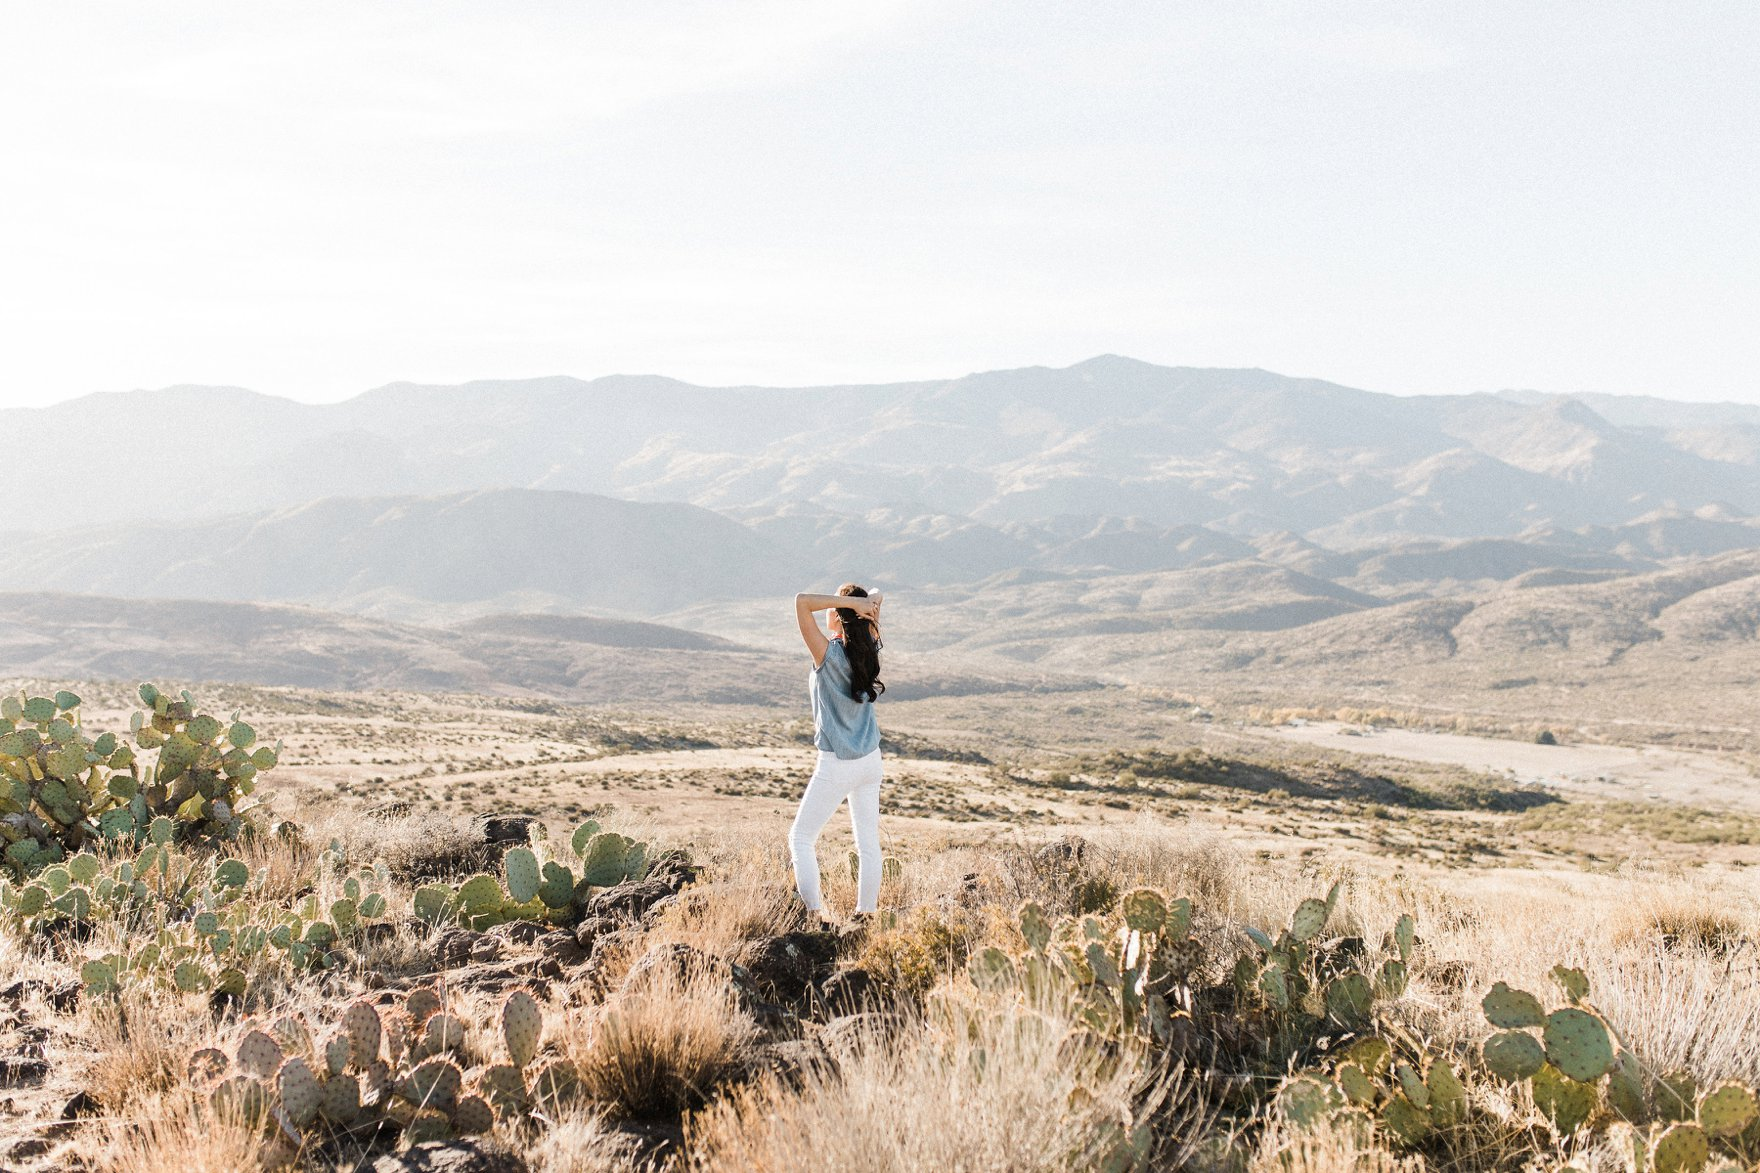 chambray short sleeved shirt white jeans with booties in tall dry grass in the arizona phoenix desert wearing looking out at the landscape